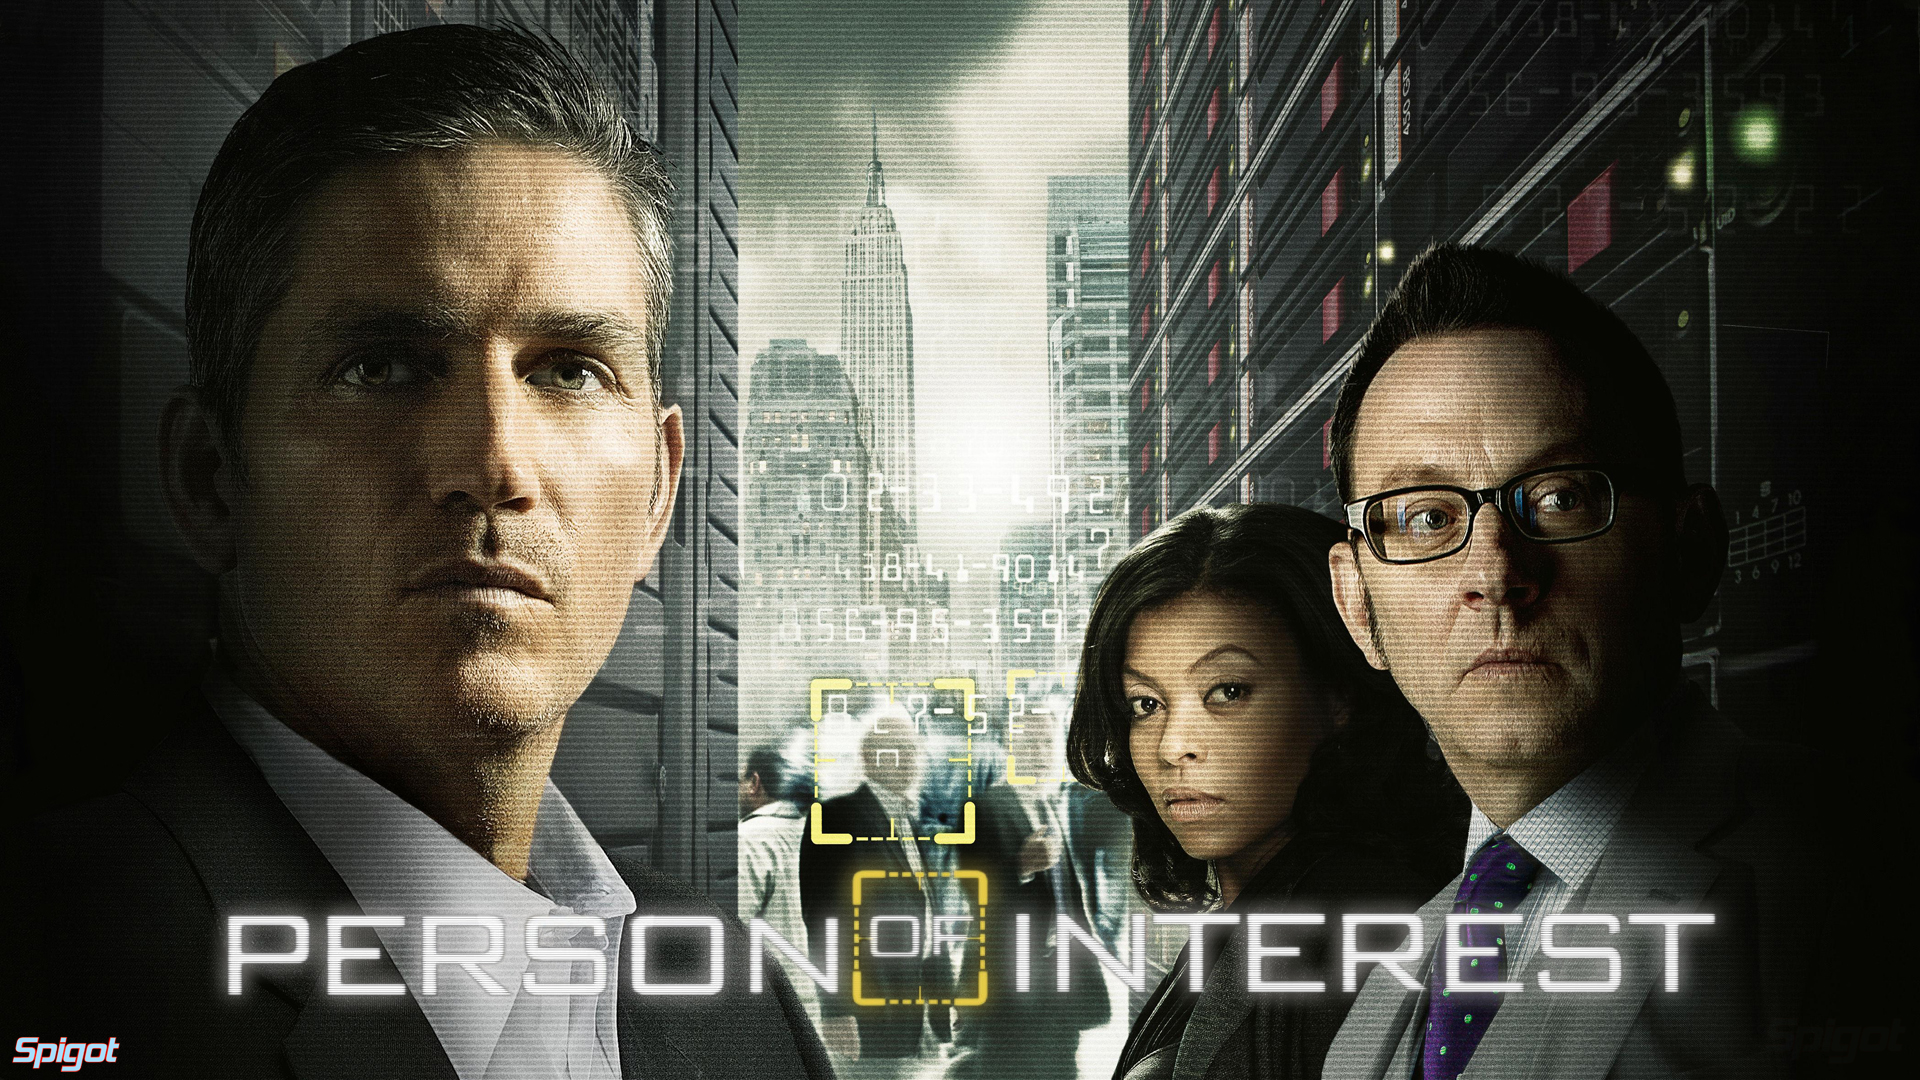 person of interest wallpapers 1920x1080 - photo #22